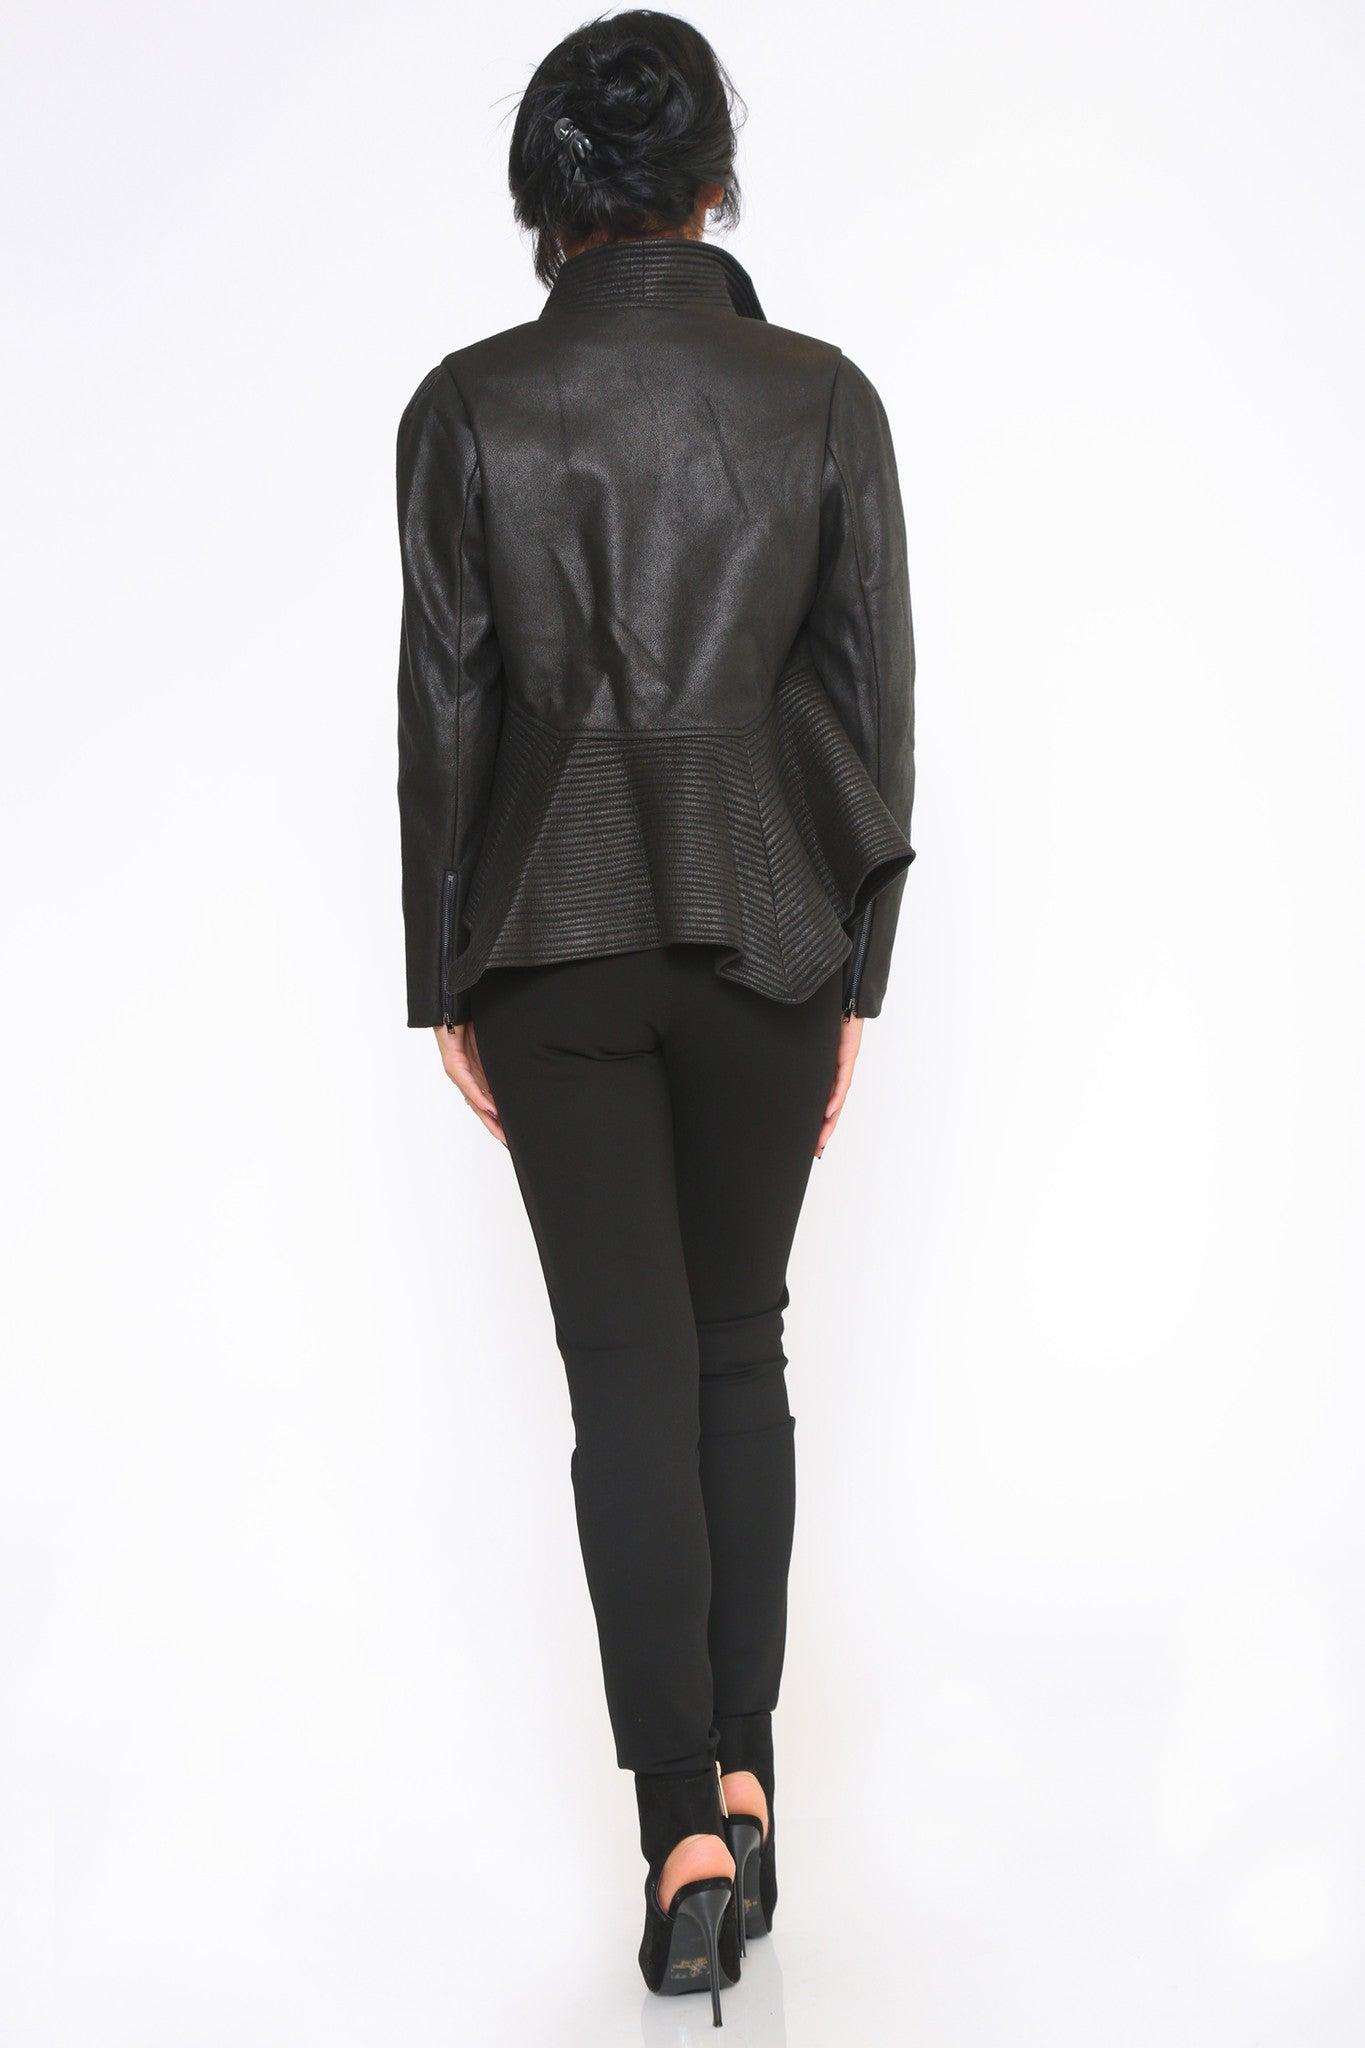 JEZEBEL JACKET - Glam Envy - 4